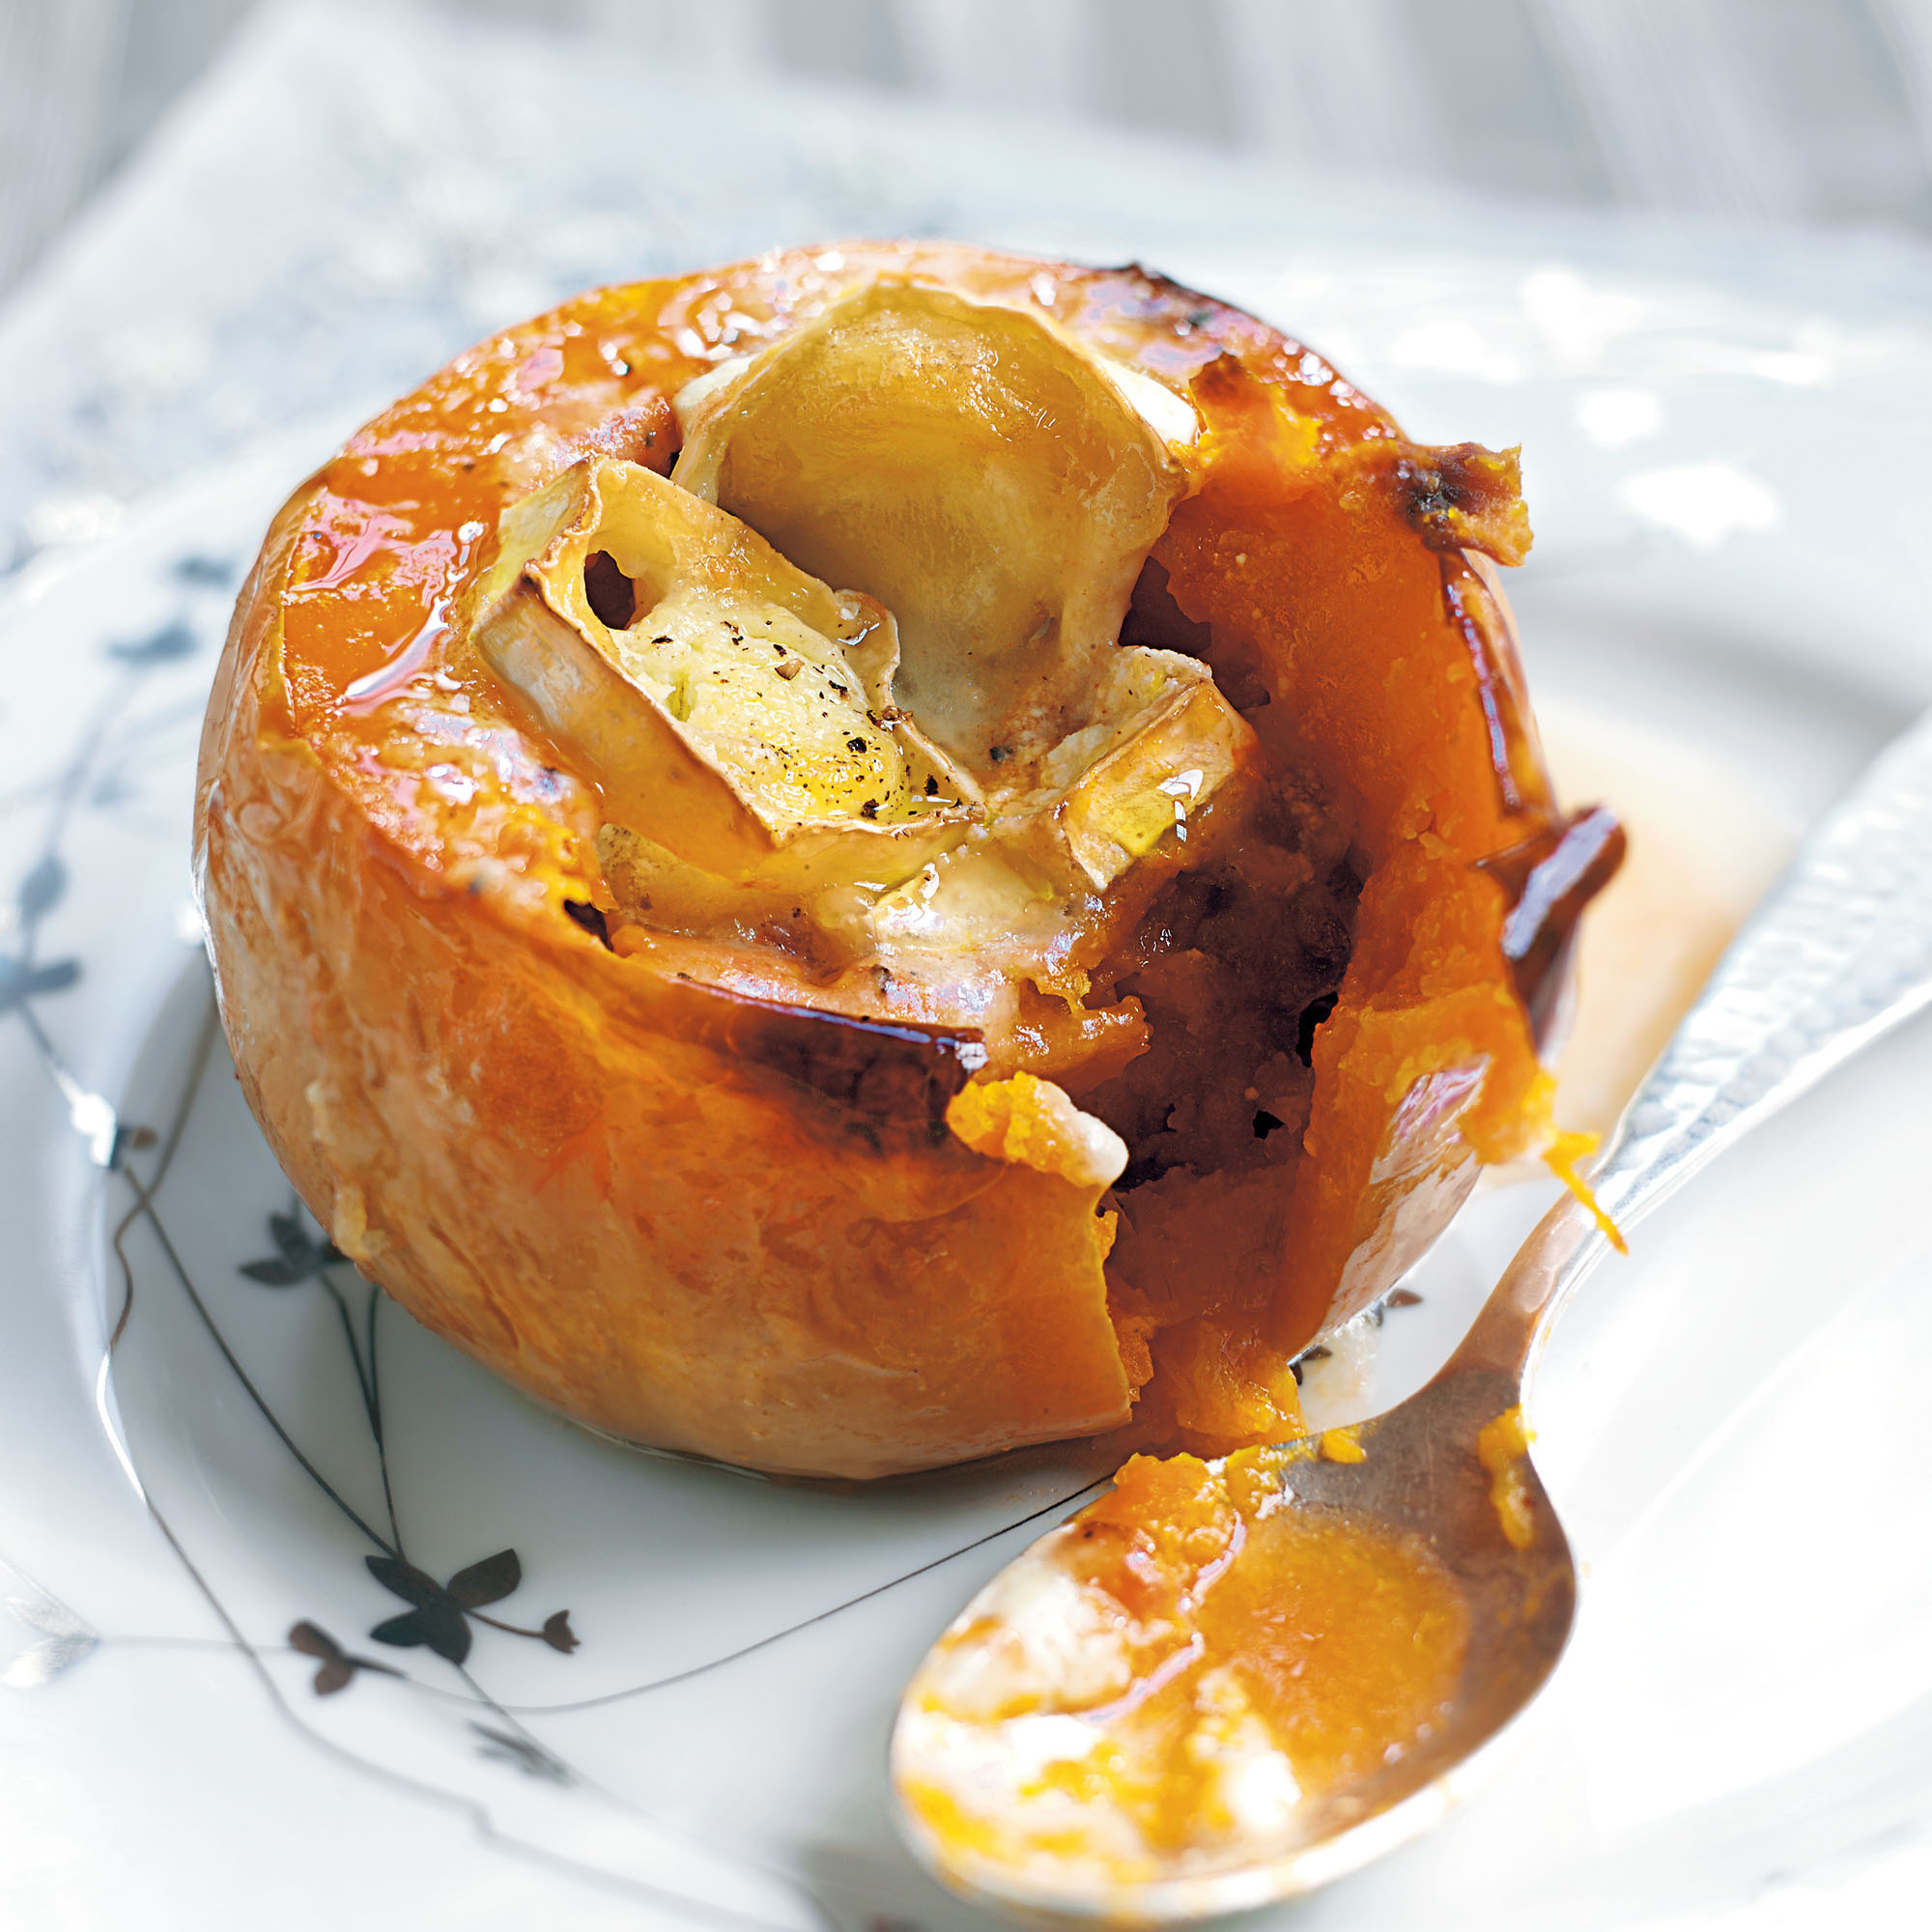 Give this roasted butternut squash with goats cheese a try if you love vegetarian starters